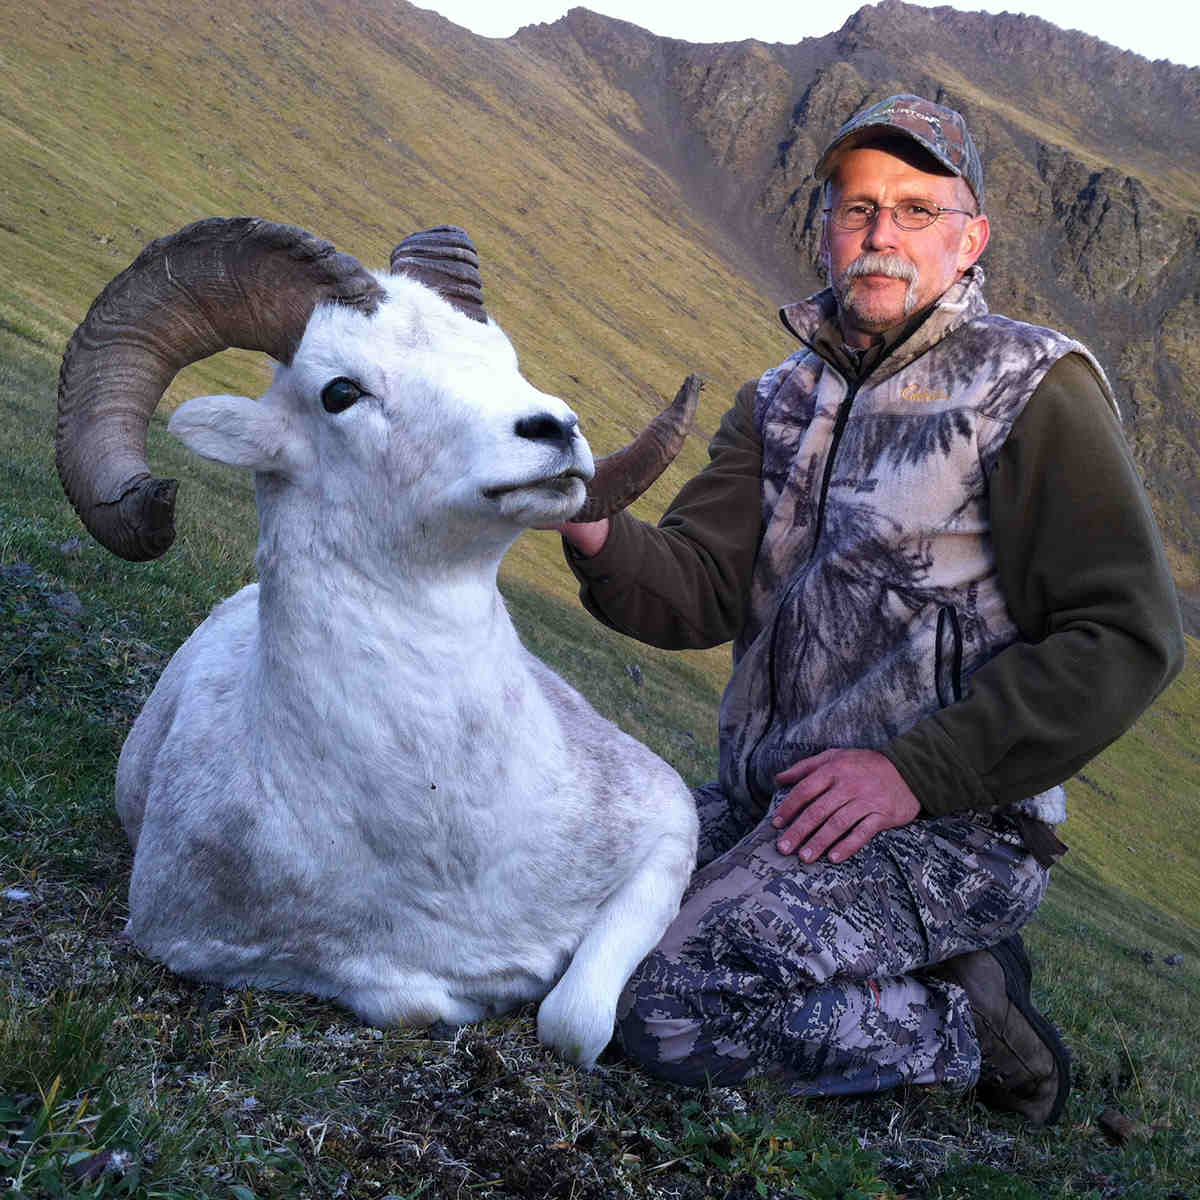 sheep-hunting-yukon-2014